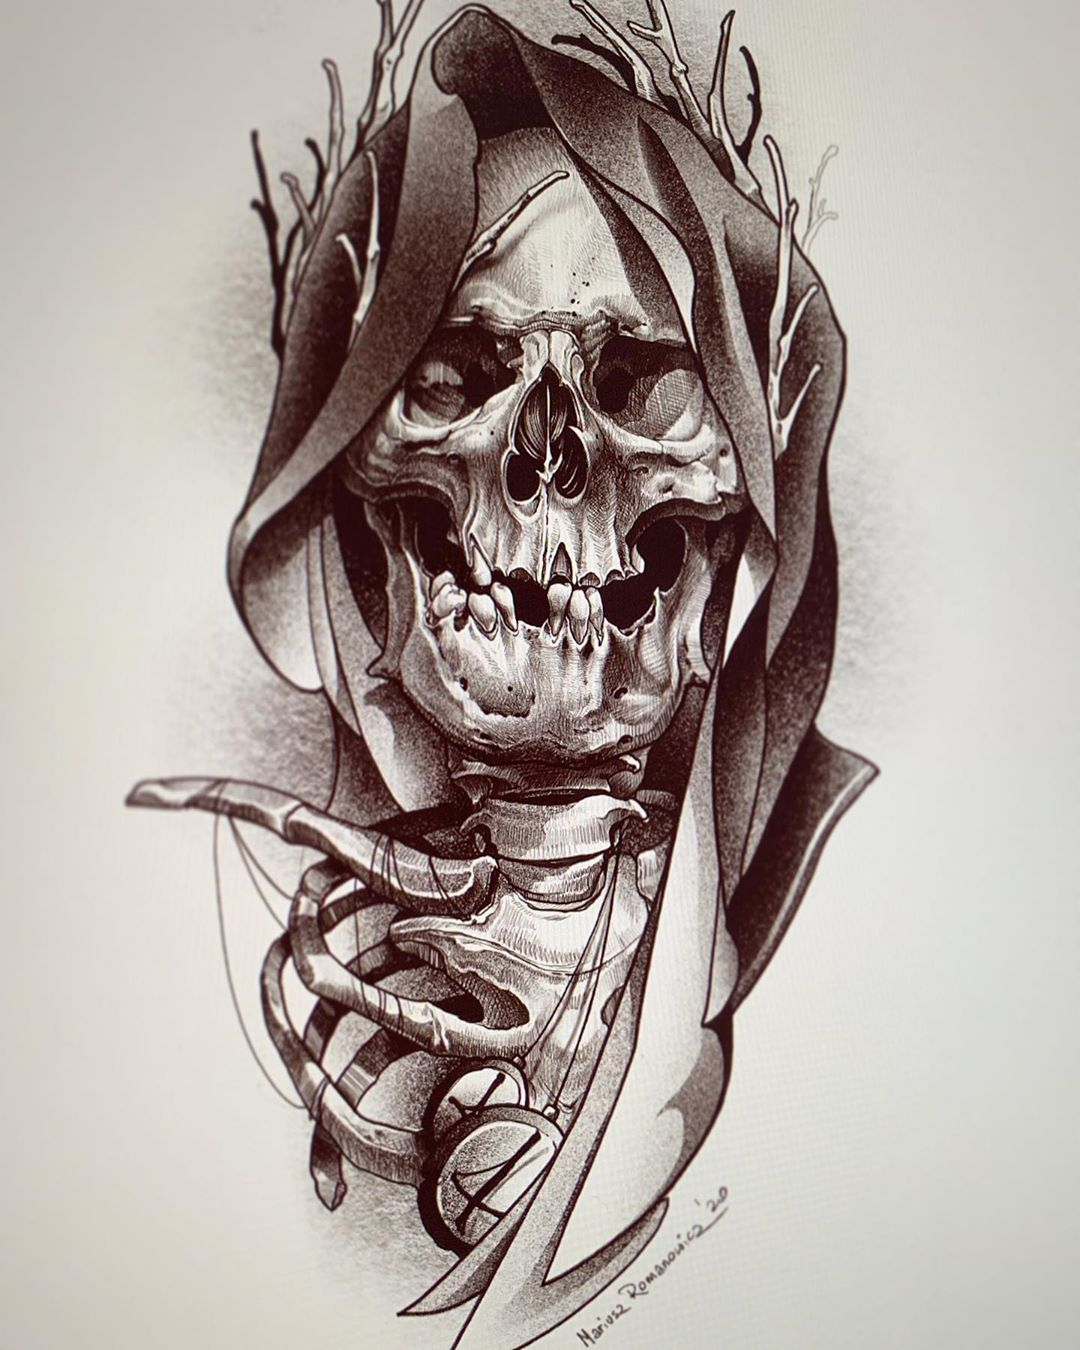 Skull Drawings For Tattoo Sketches In 2020 Skulls Drawing Tattoo Sketches Skull Drawing Tattoo